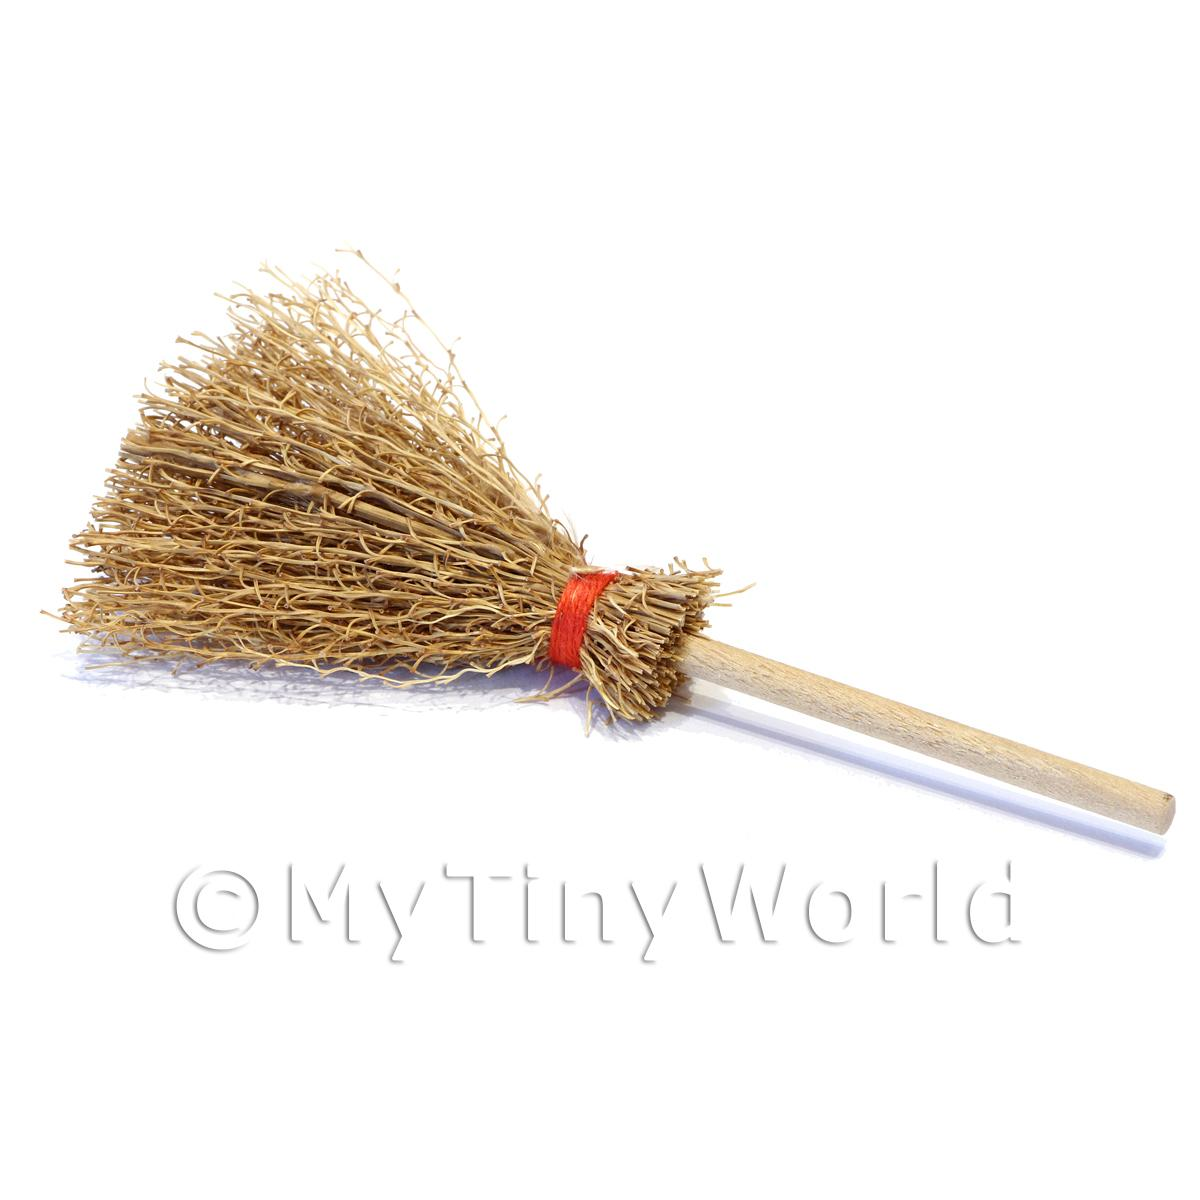 Quality Old Style Dolls House Miniature Wood Broom